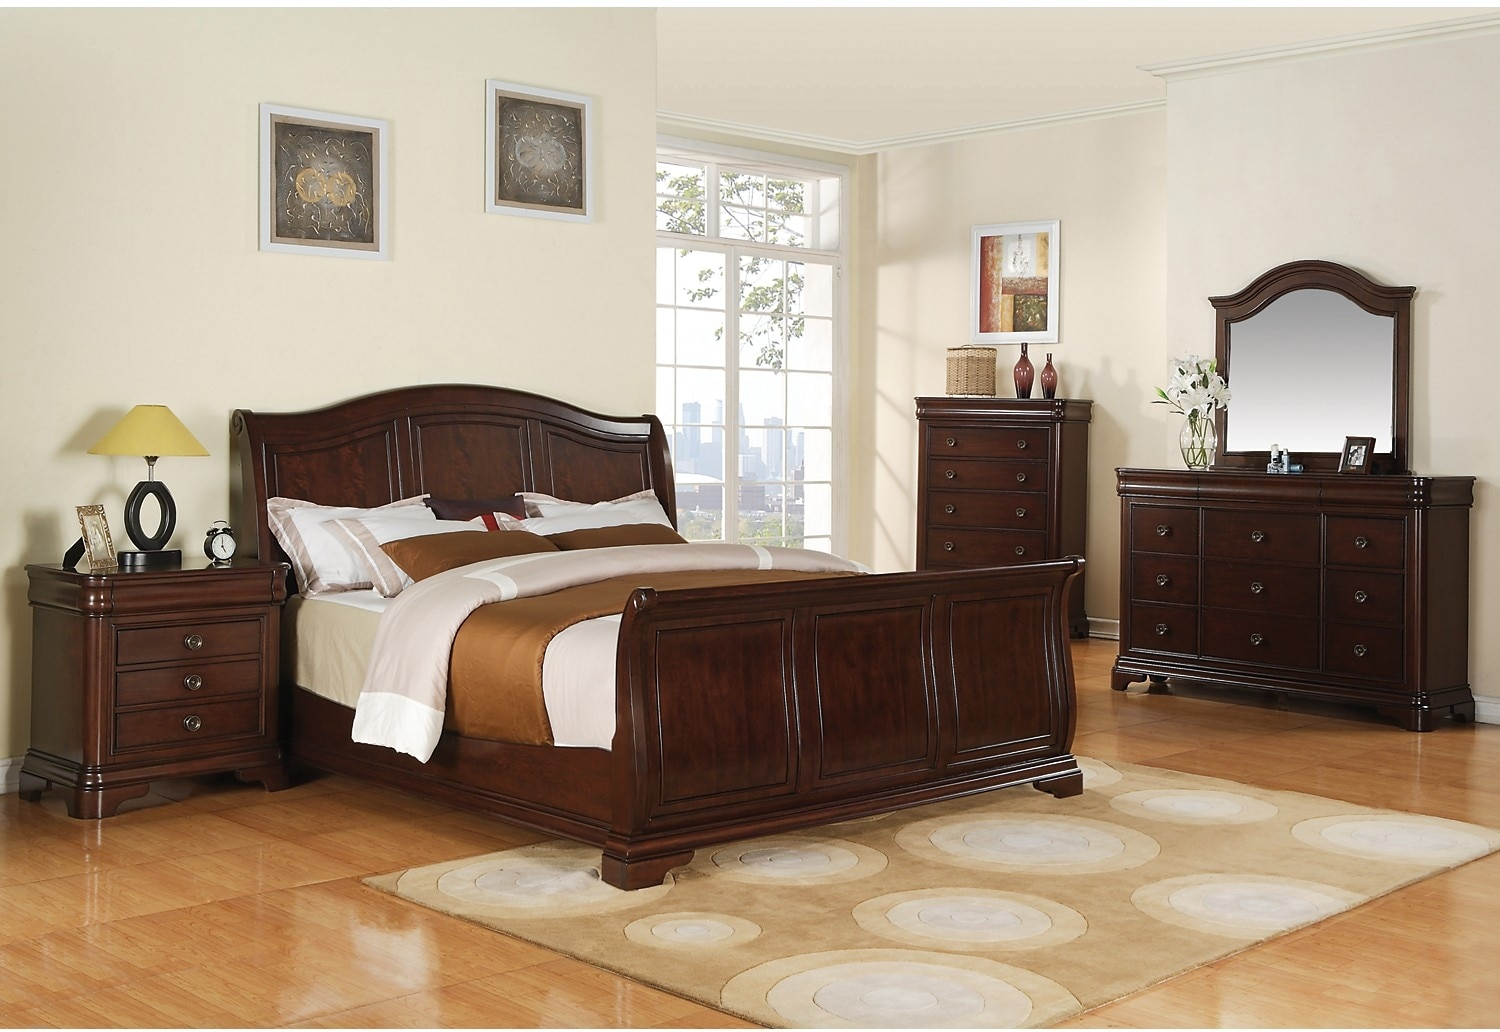 Bedroom Furniture - Cameron 8-Piece Queen Bedroom Package – Merlot